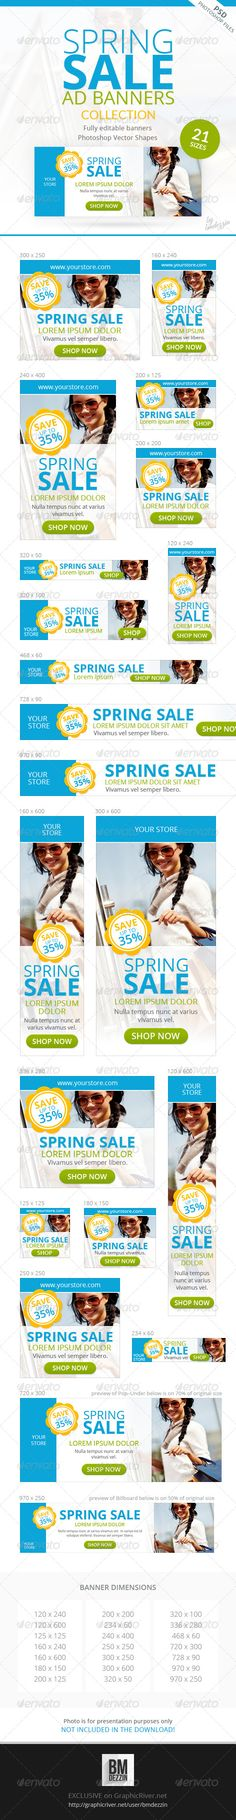 Spring Sale Promotion Web Ad Banners Template PSD   Buy and Download: http://graphicriver.net/item/spring-sale-promotion-web-ad-banners/6959669?WT.ac=category_thumb&WT.z_author=bmdezzin&ref=ksioks